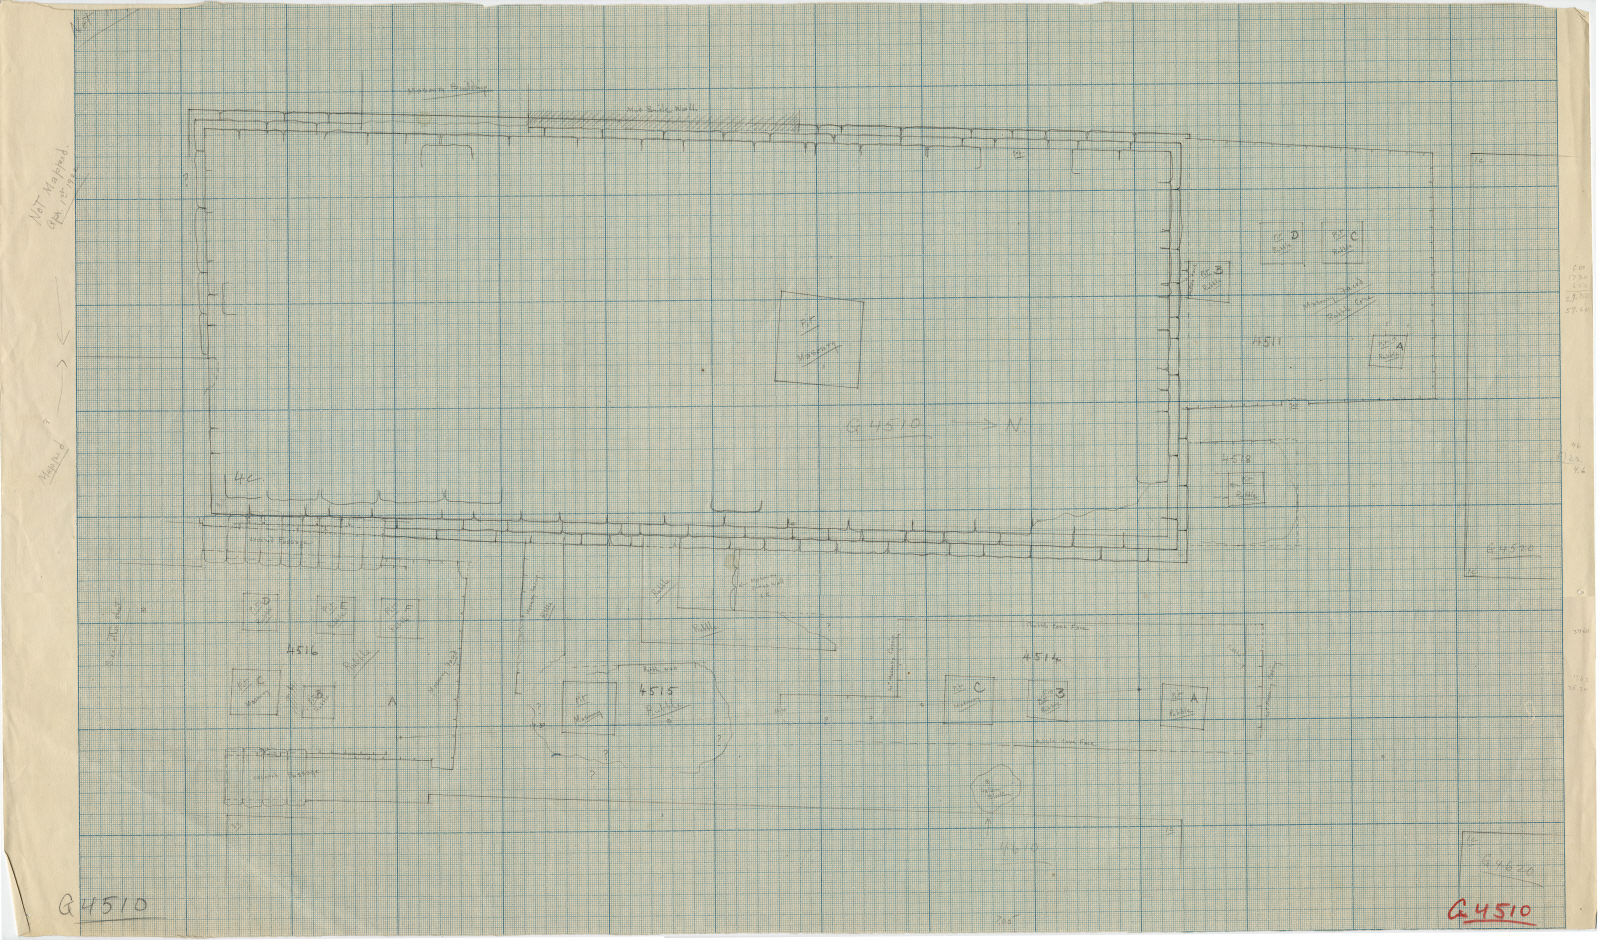 Maps and plans: Plan of G 4510, with positions of G 4511, G 4514, G 4515, G 4516, G 4518, G 4520, G 4610, G 4620